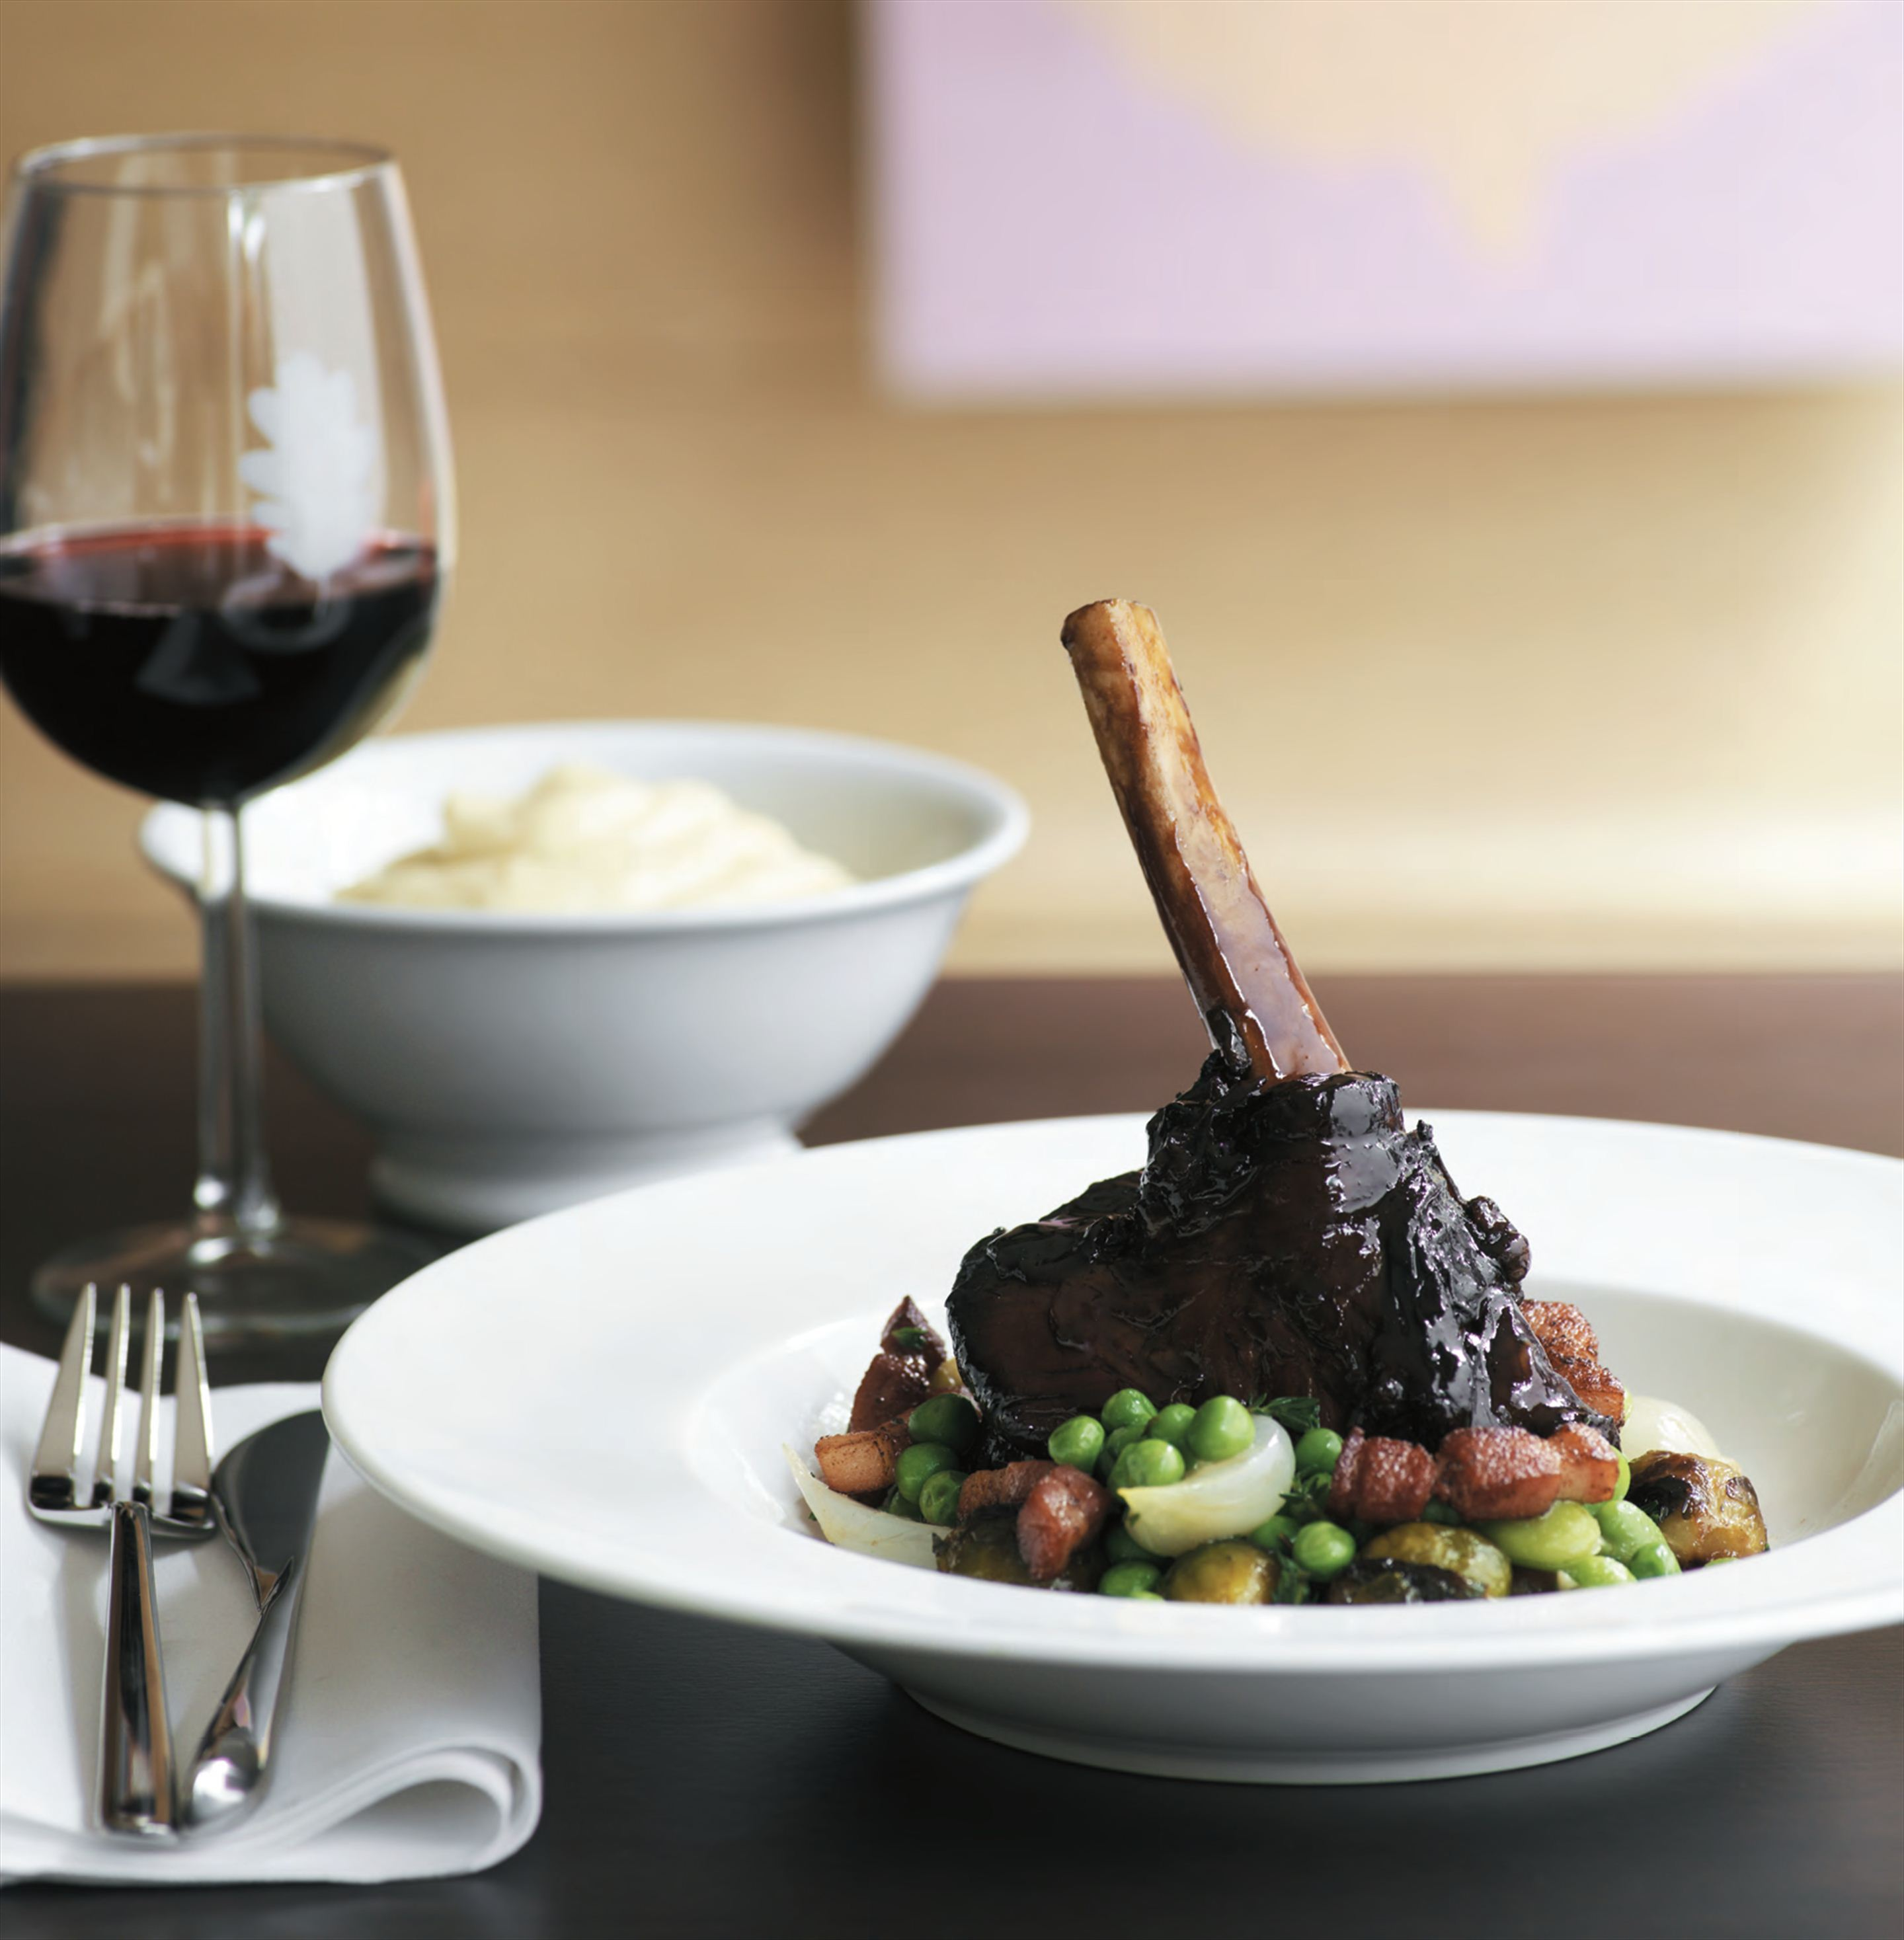 Lamb shanks marinated in the style of venison with chestnuts, smoked bacon and celeriac